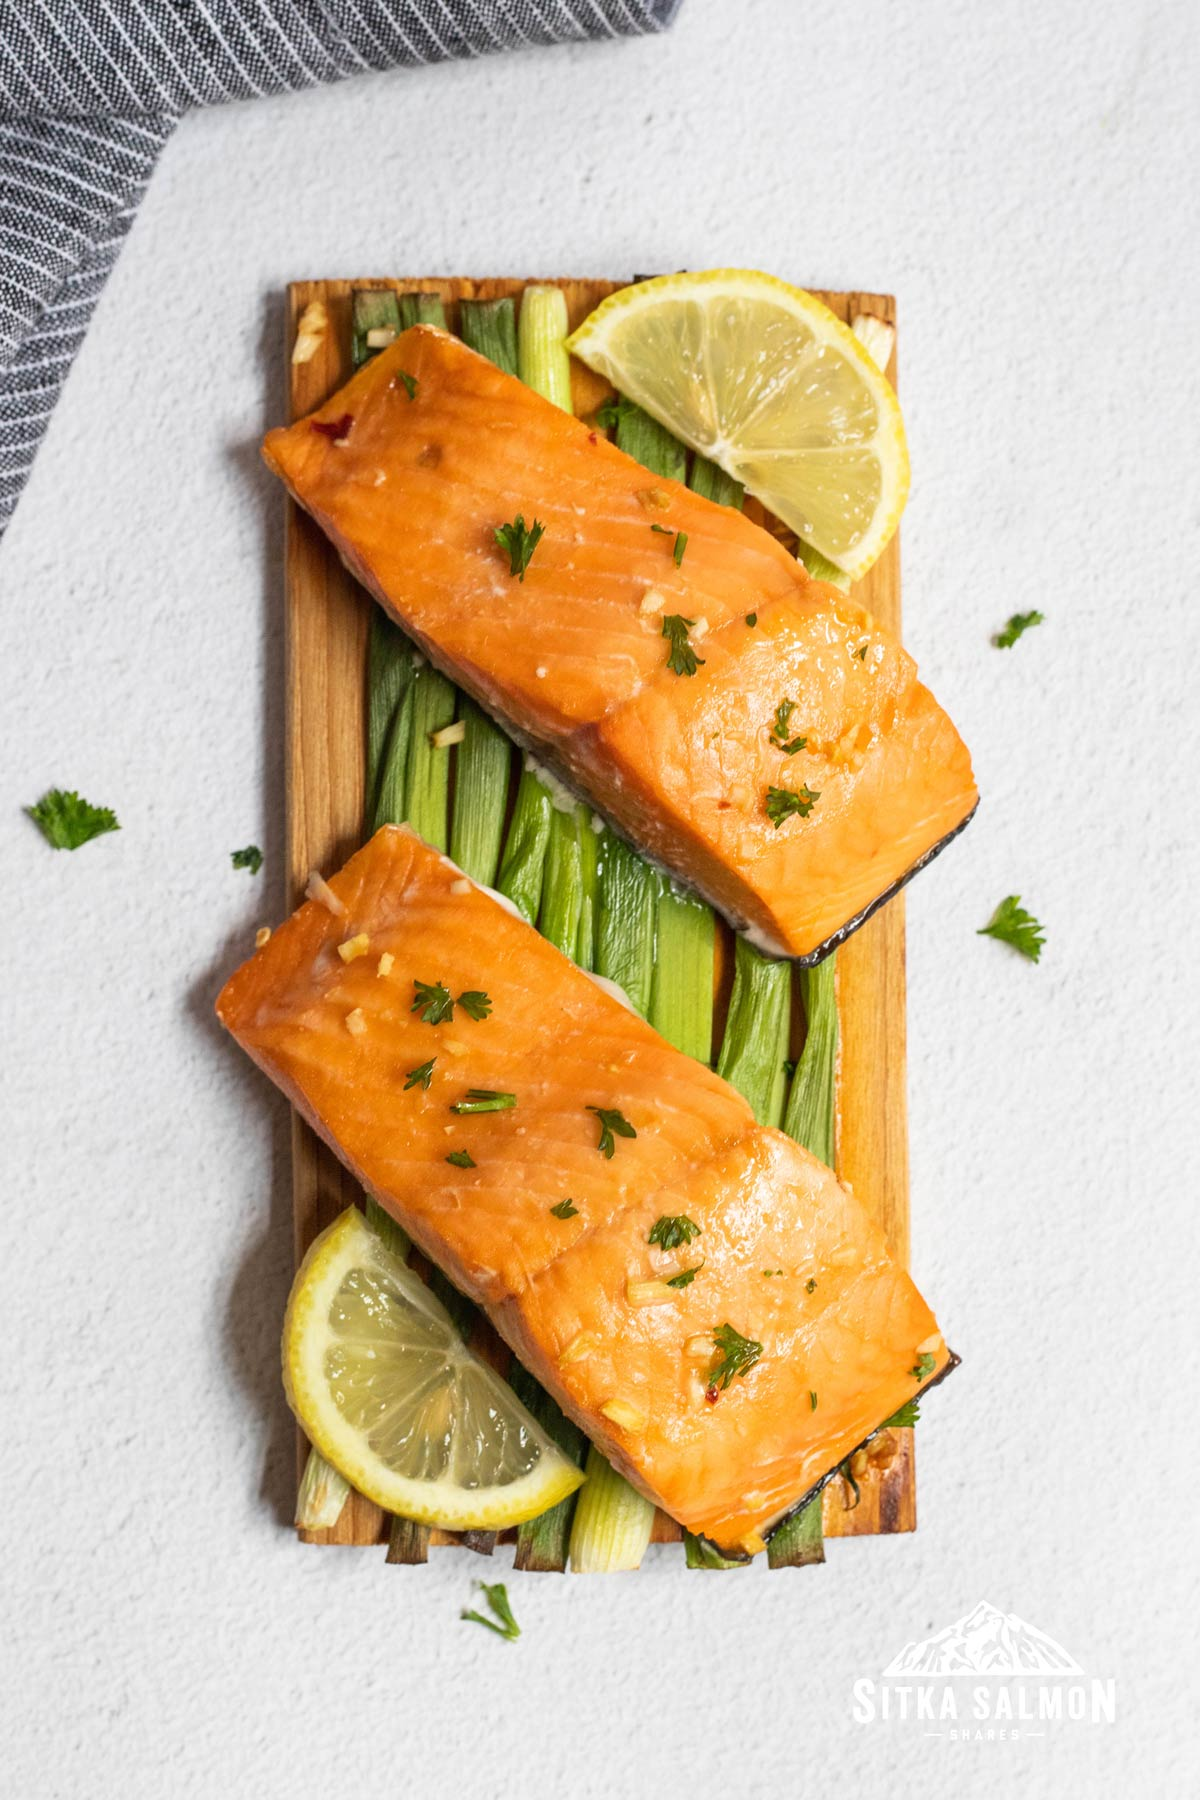 Planked Sockeye Salmon with Maple Soy Glaze Recipe | Sitka Salmon Shares